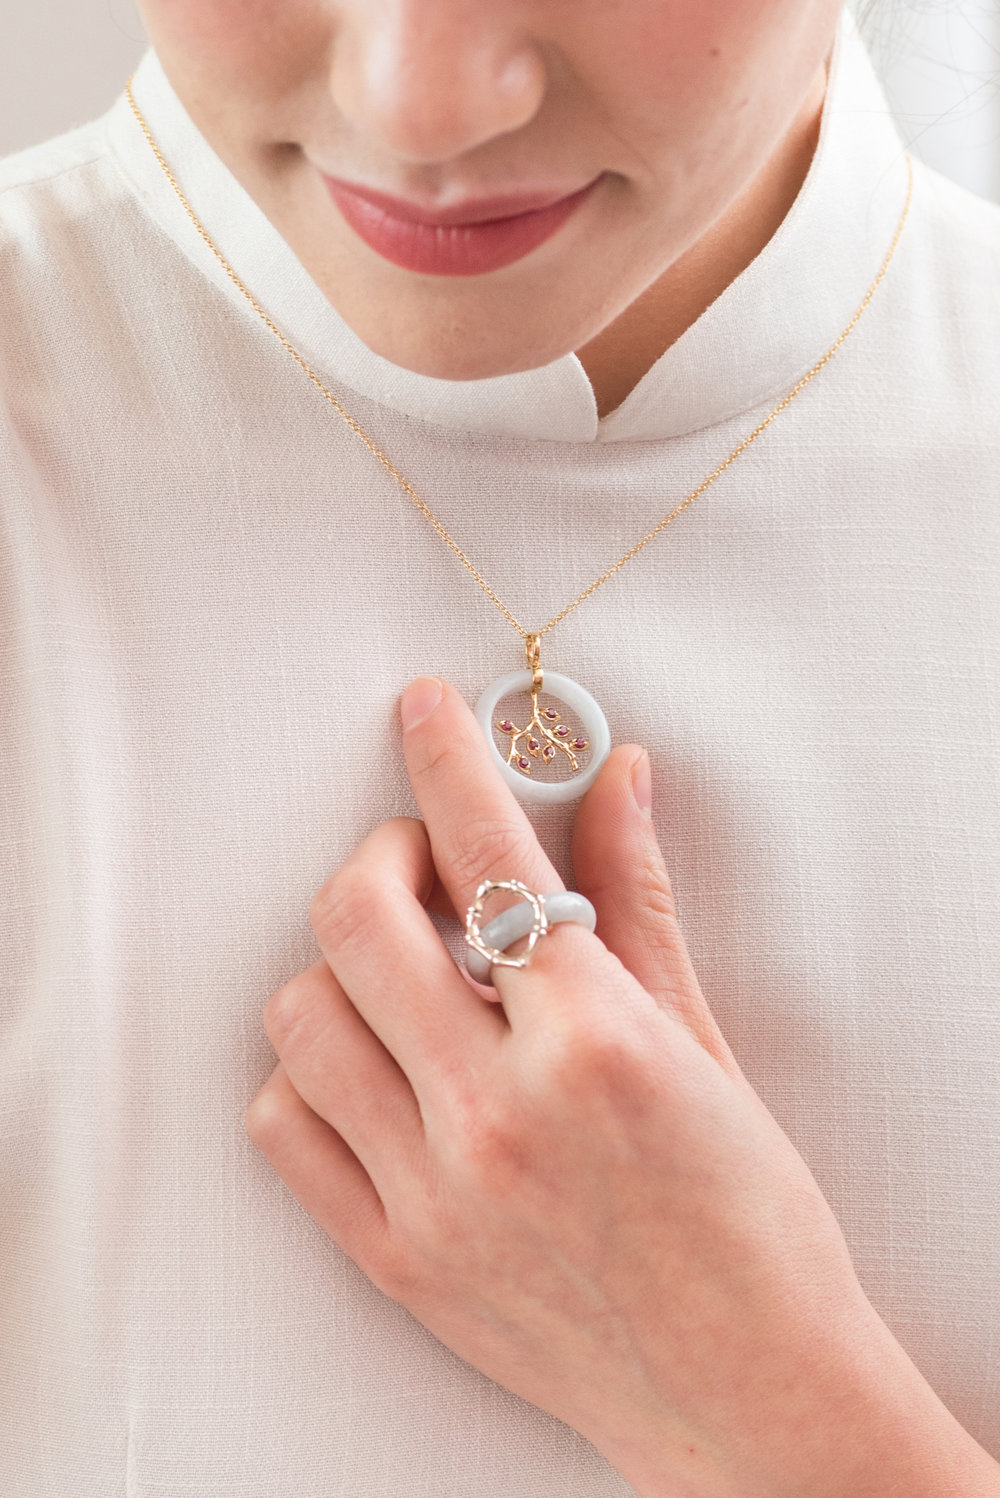 Bamboo Vine Necklace ,  Bamboo Square Jade Ring in Ivory Gol d.